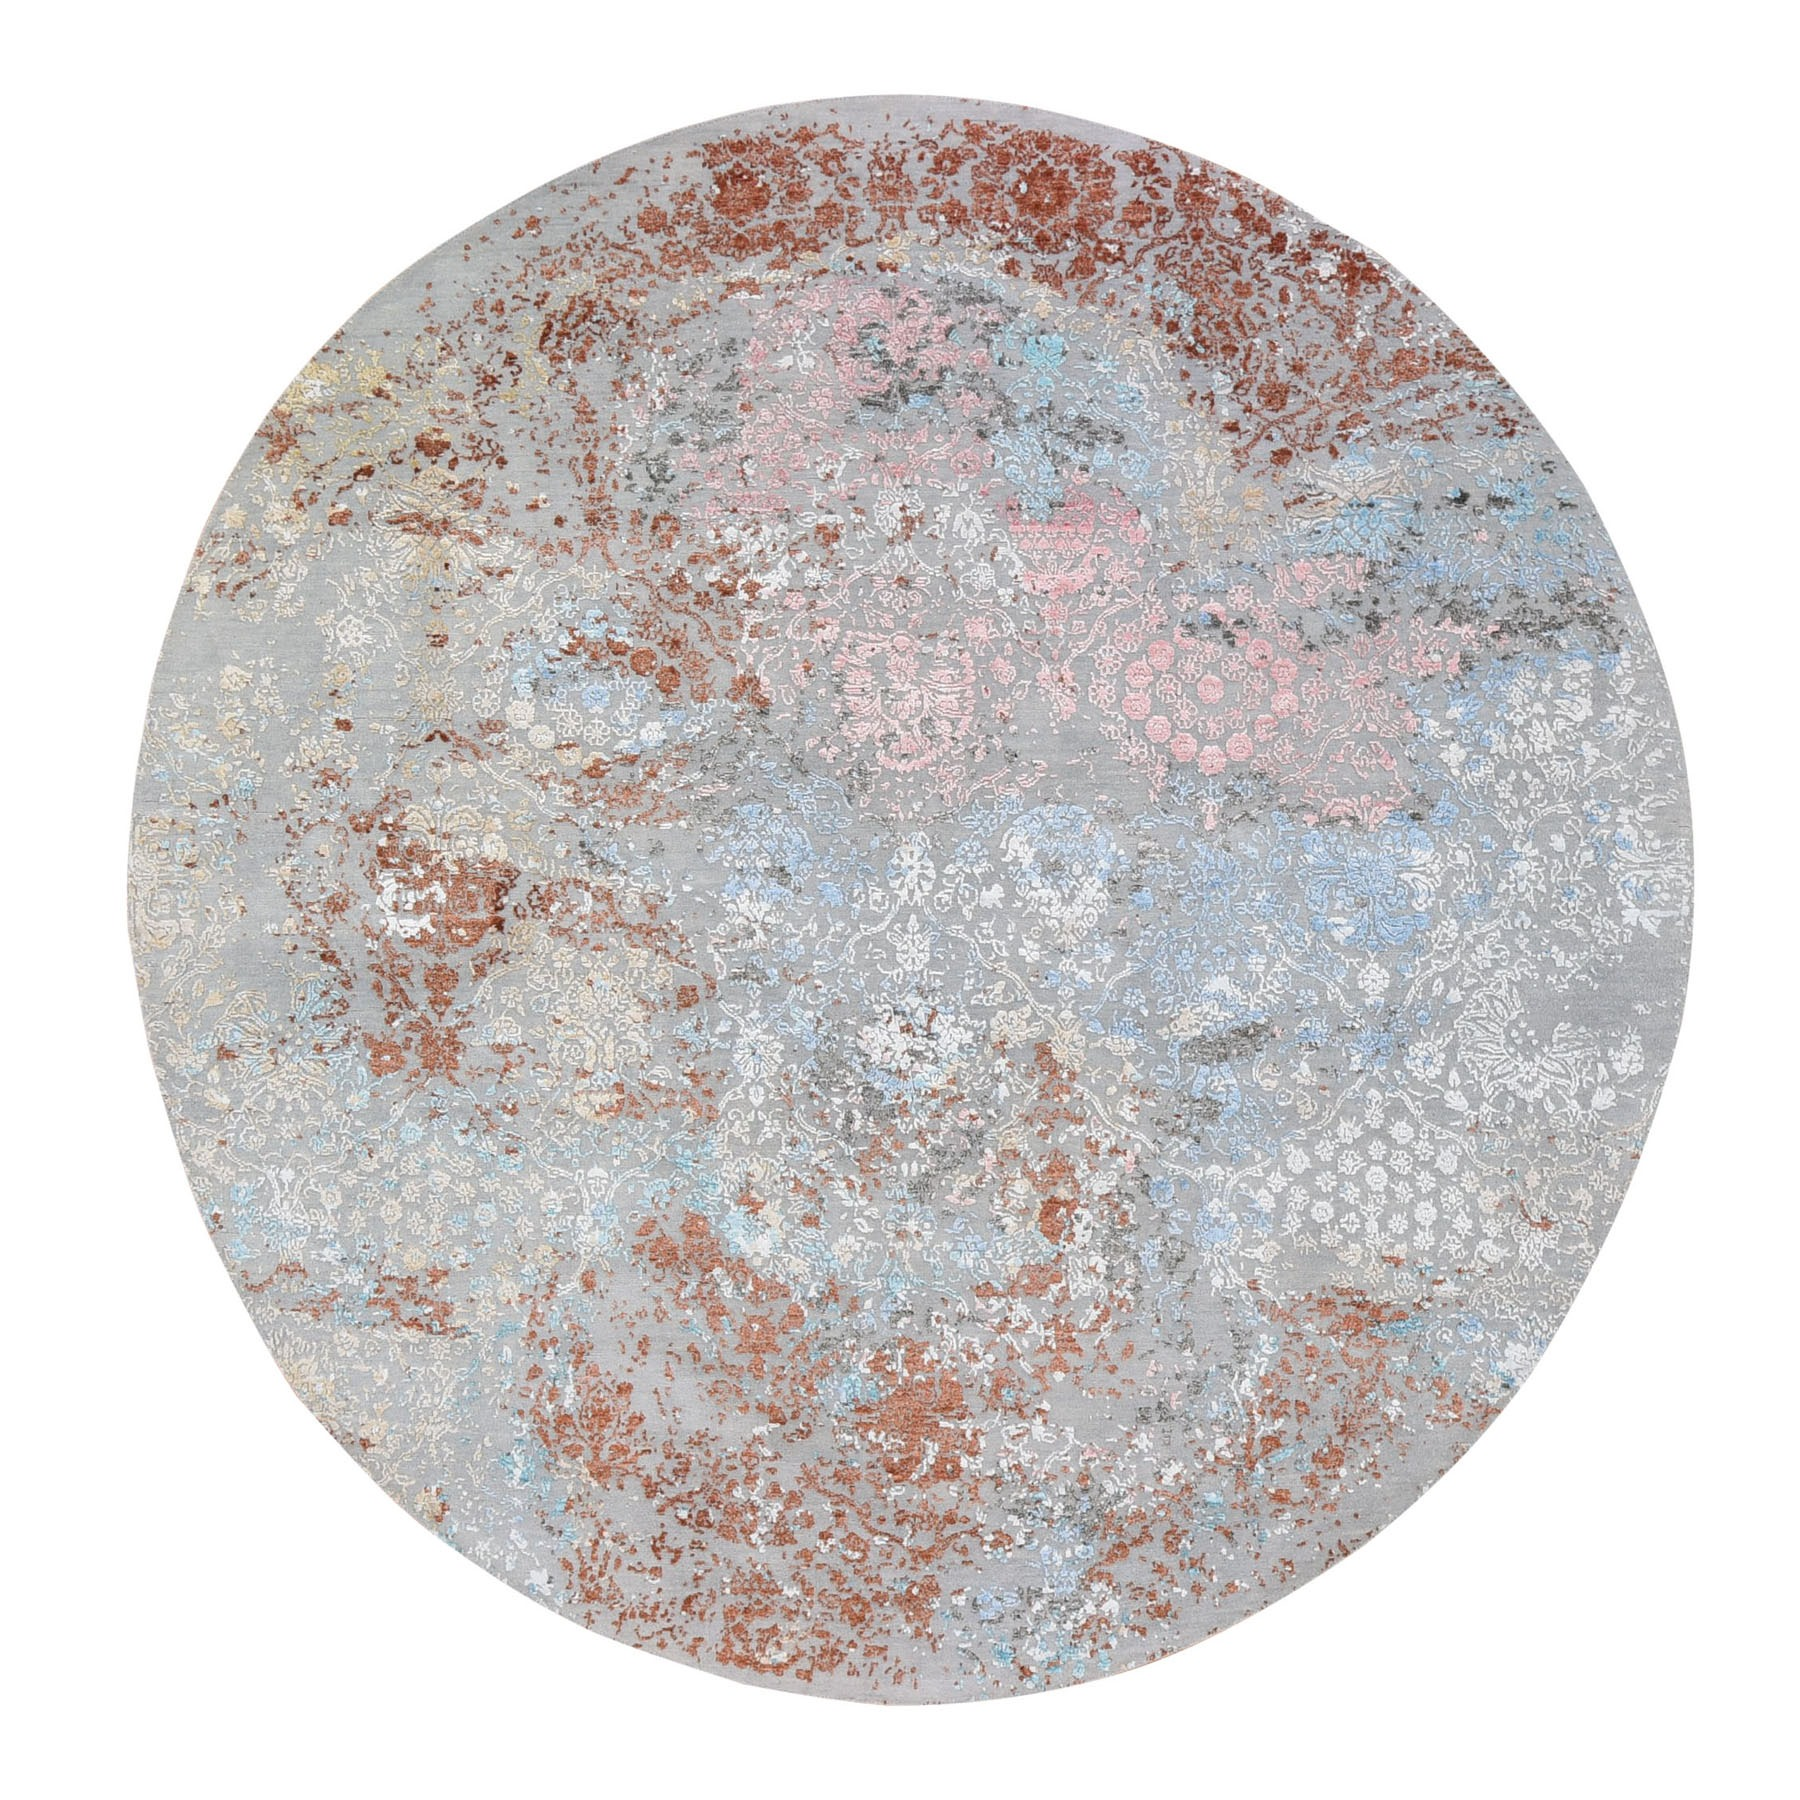 8'x8' Colorful Transitional Design Wool And Silk Hi-Low Pile Denser Weave Round Hand Knotted Oriental Rug